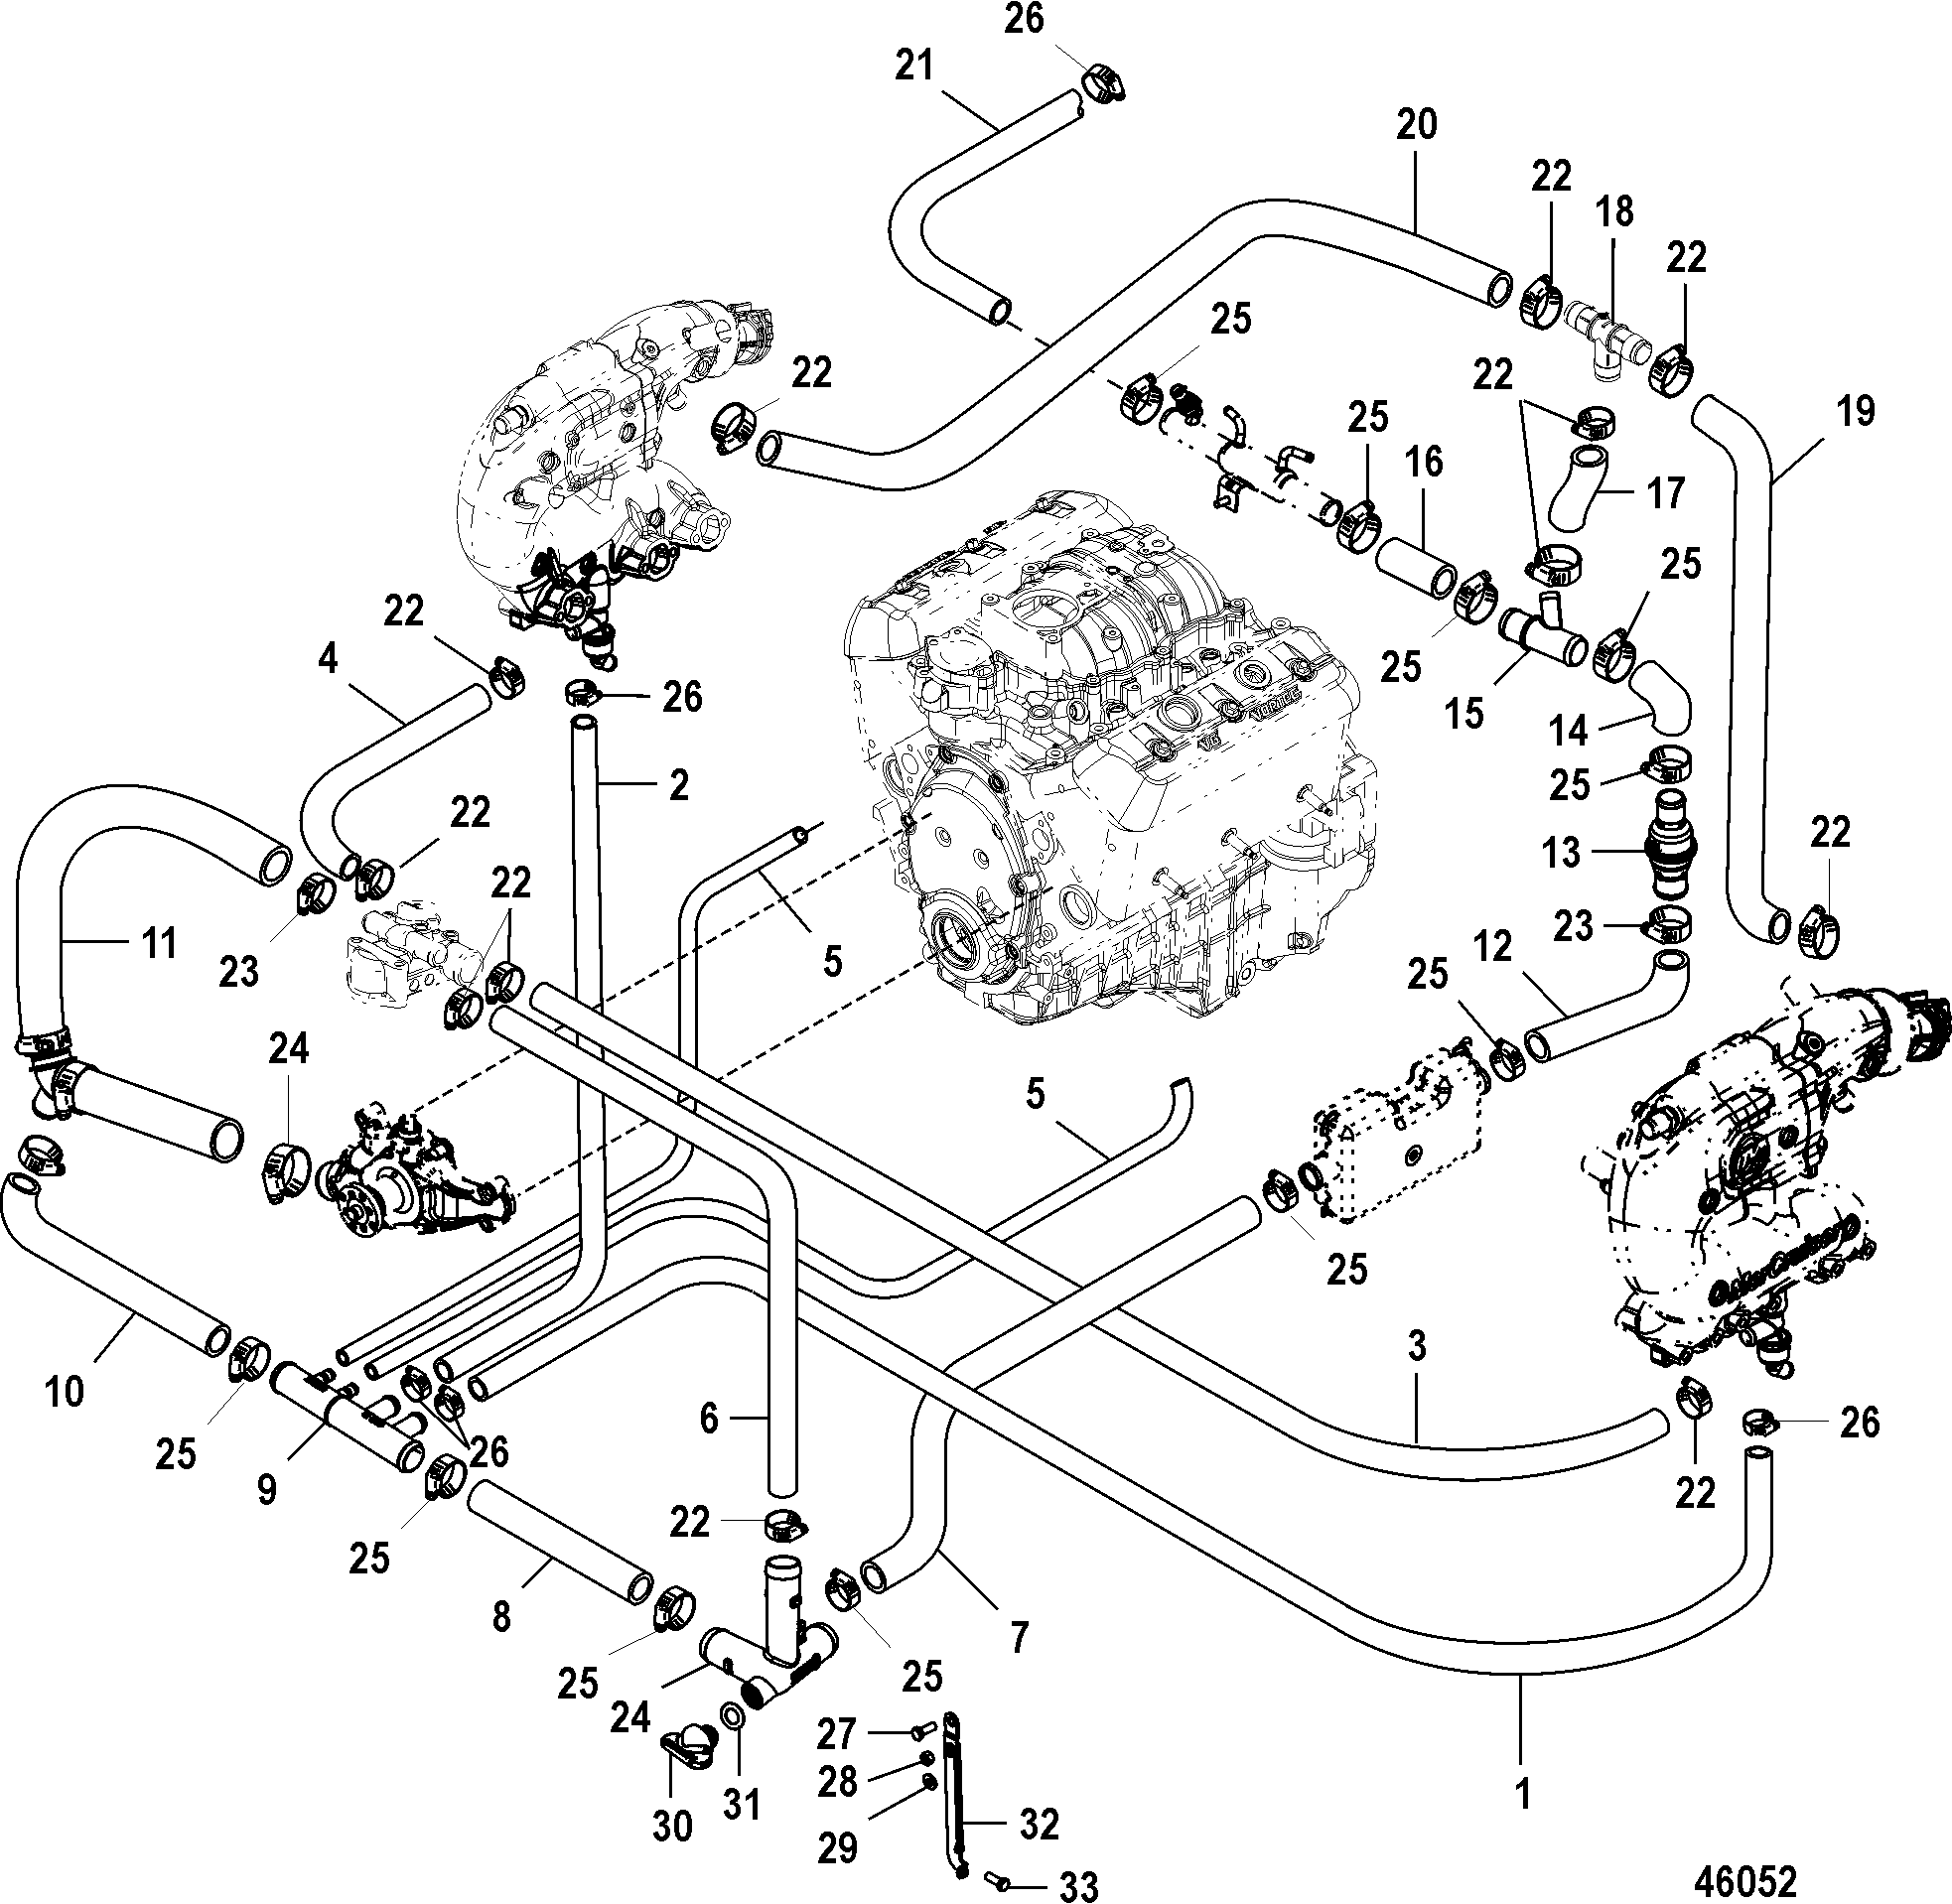 1989 Omc Wiring Diagram Within Diagram Wiring And Engine